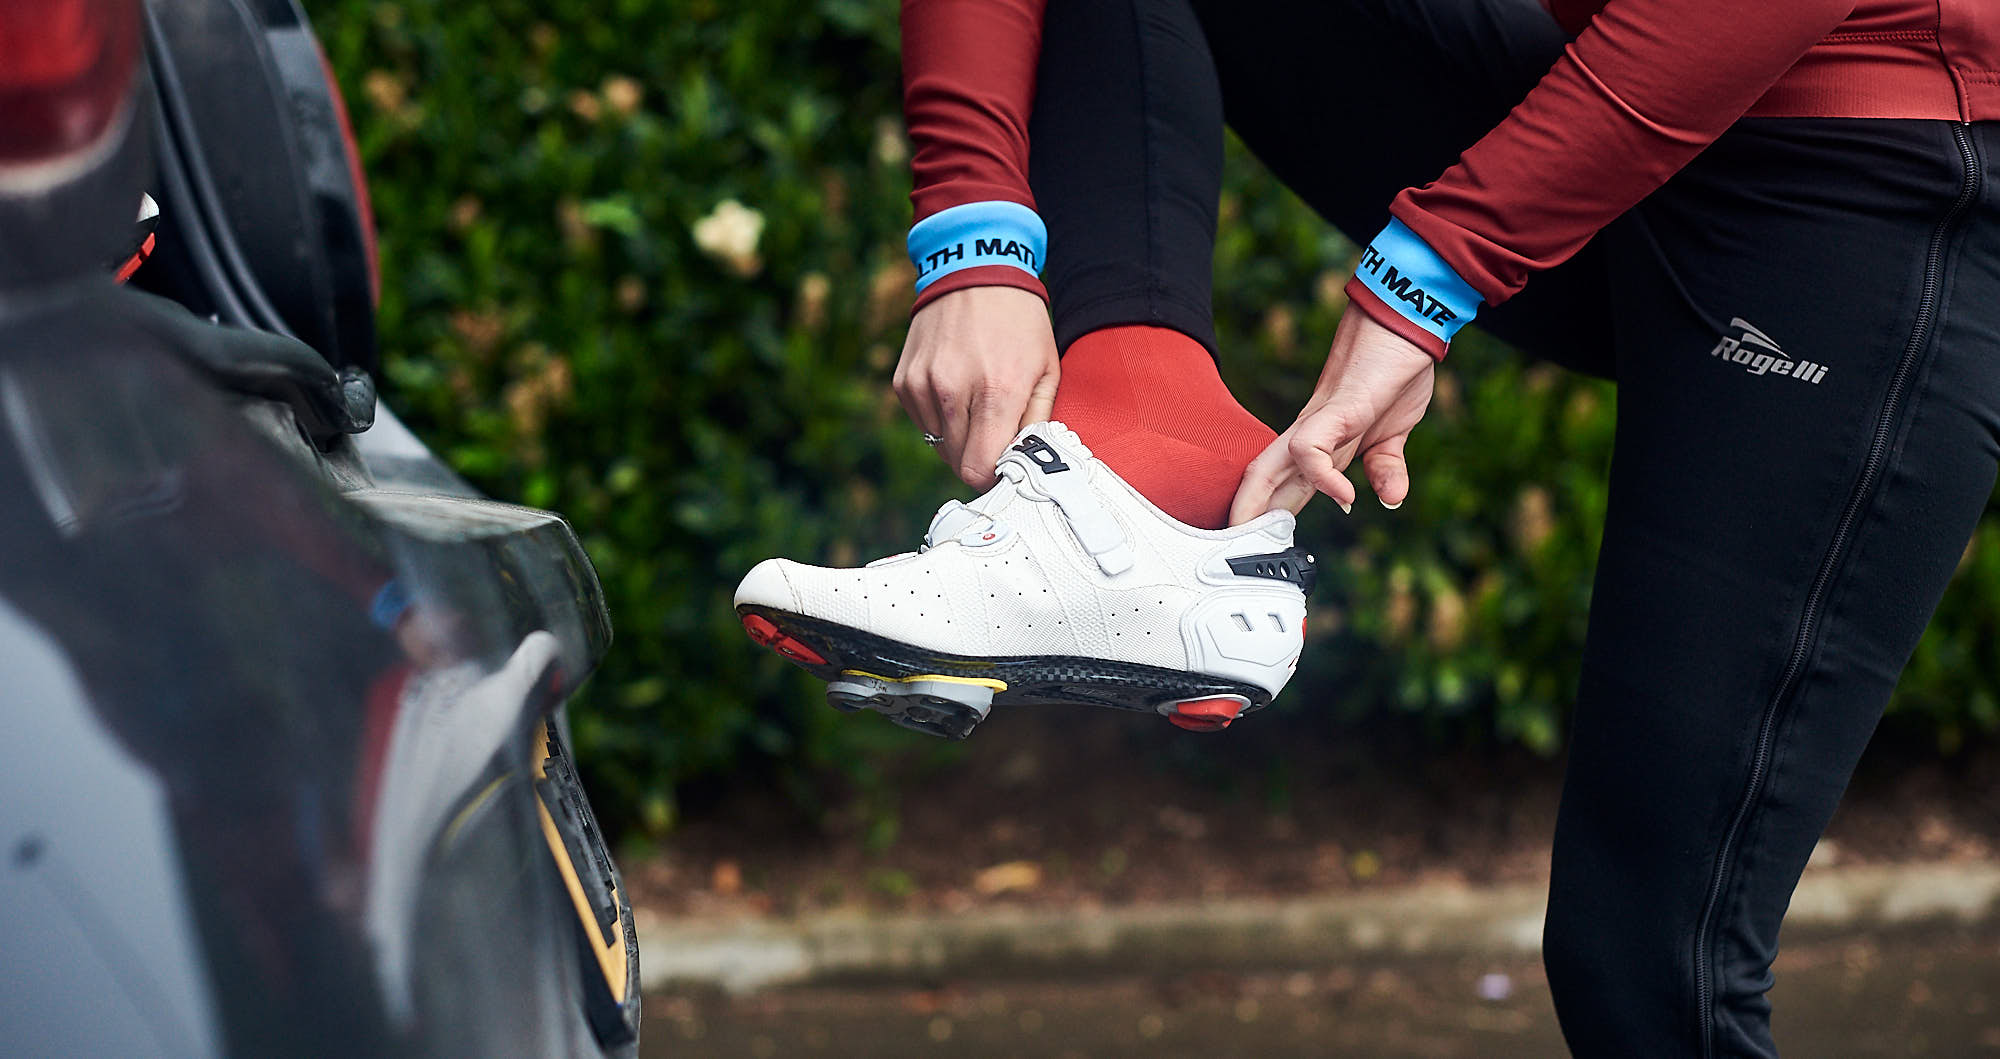 Cyclist Elodie Kuijper putting on her shoe